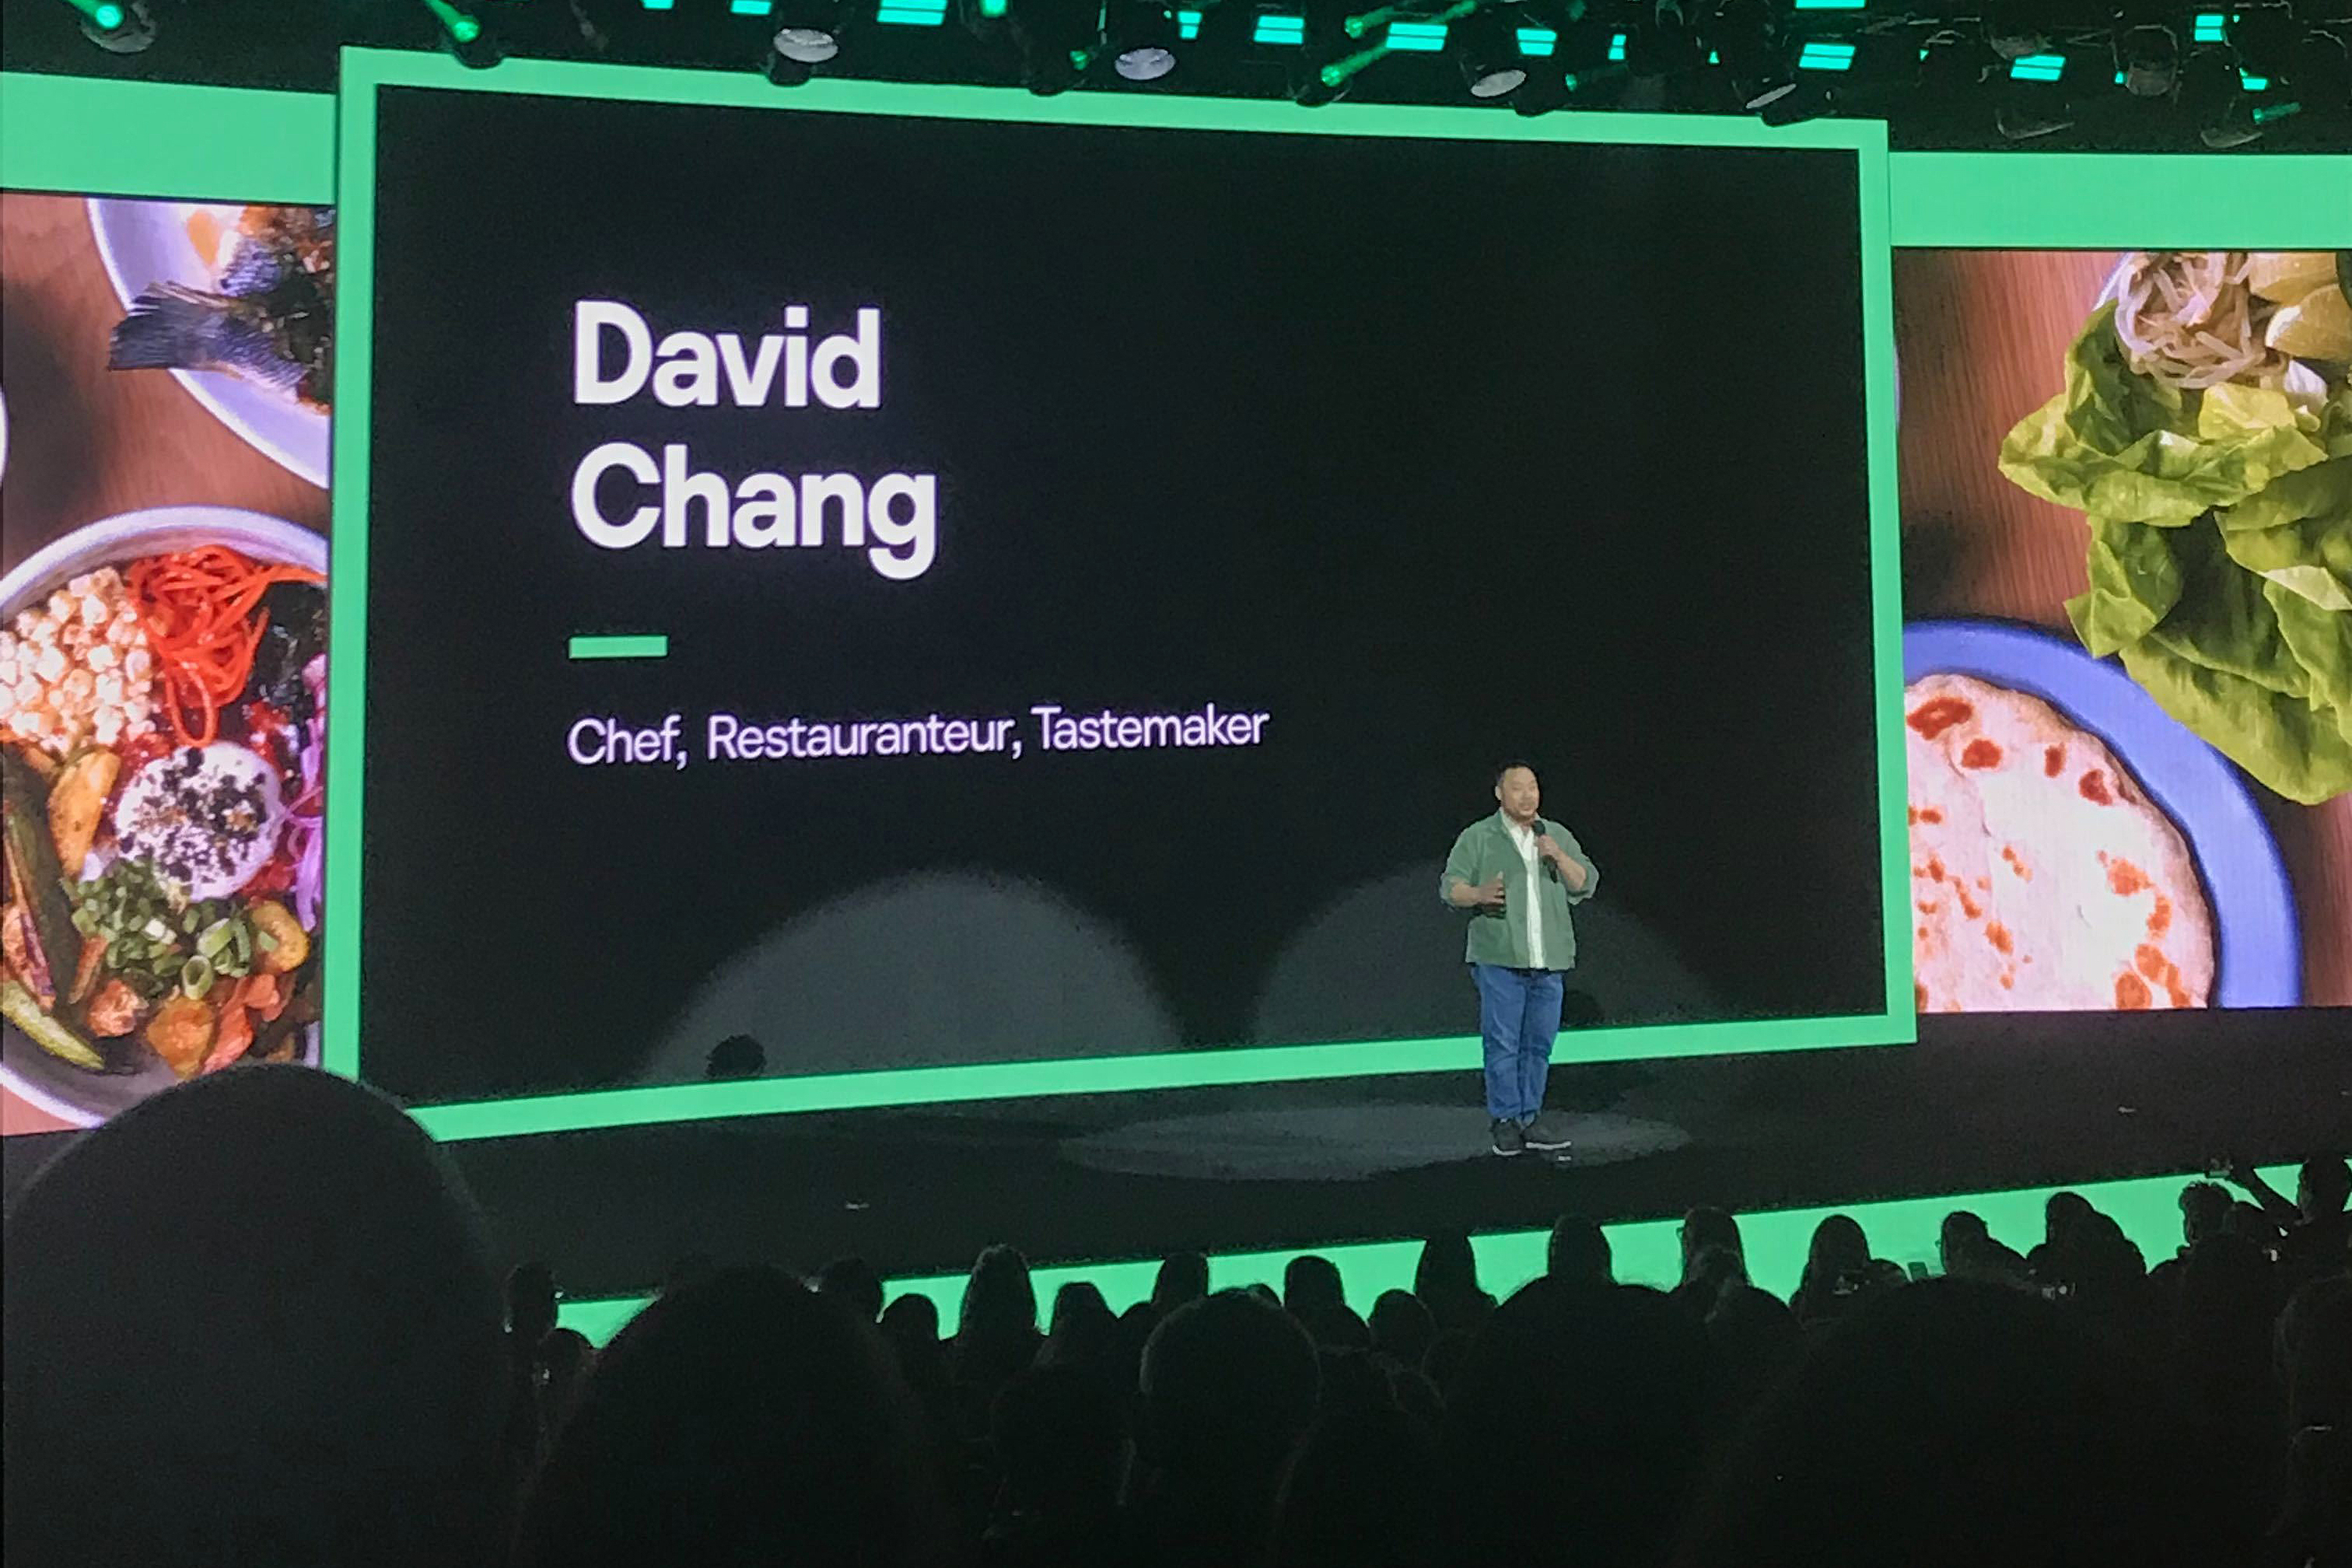 NewFronts Day 3: Wake-up with Wu-Tang at Hulu, Vice delivers dim sum, Vudu makes its first NYC pitch